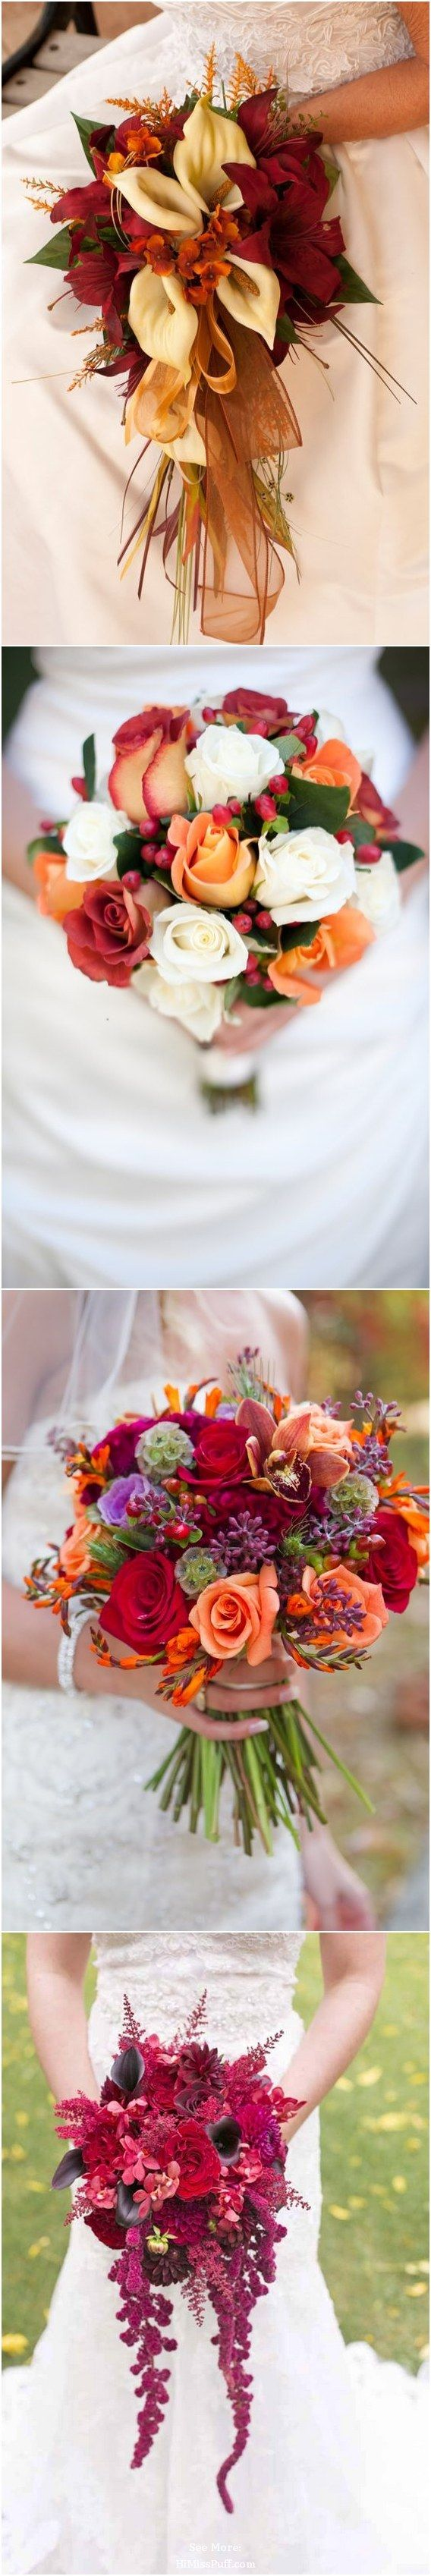 Fall wedding bouquets for autumn brides httphimisspuff fall wedding bouquets for autumn brides httphimisspuff izmirmasajfo